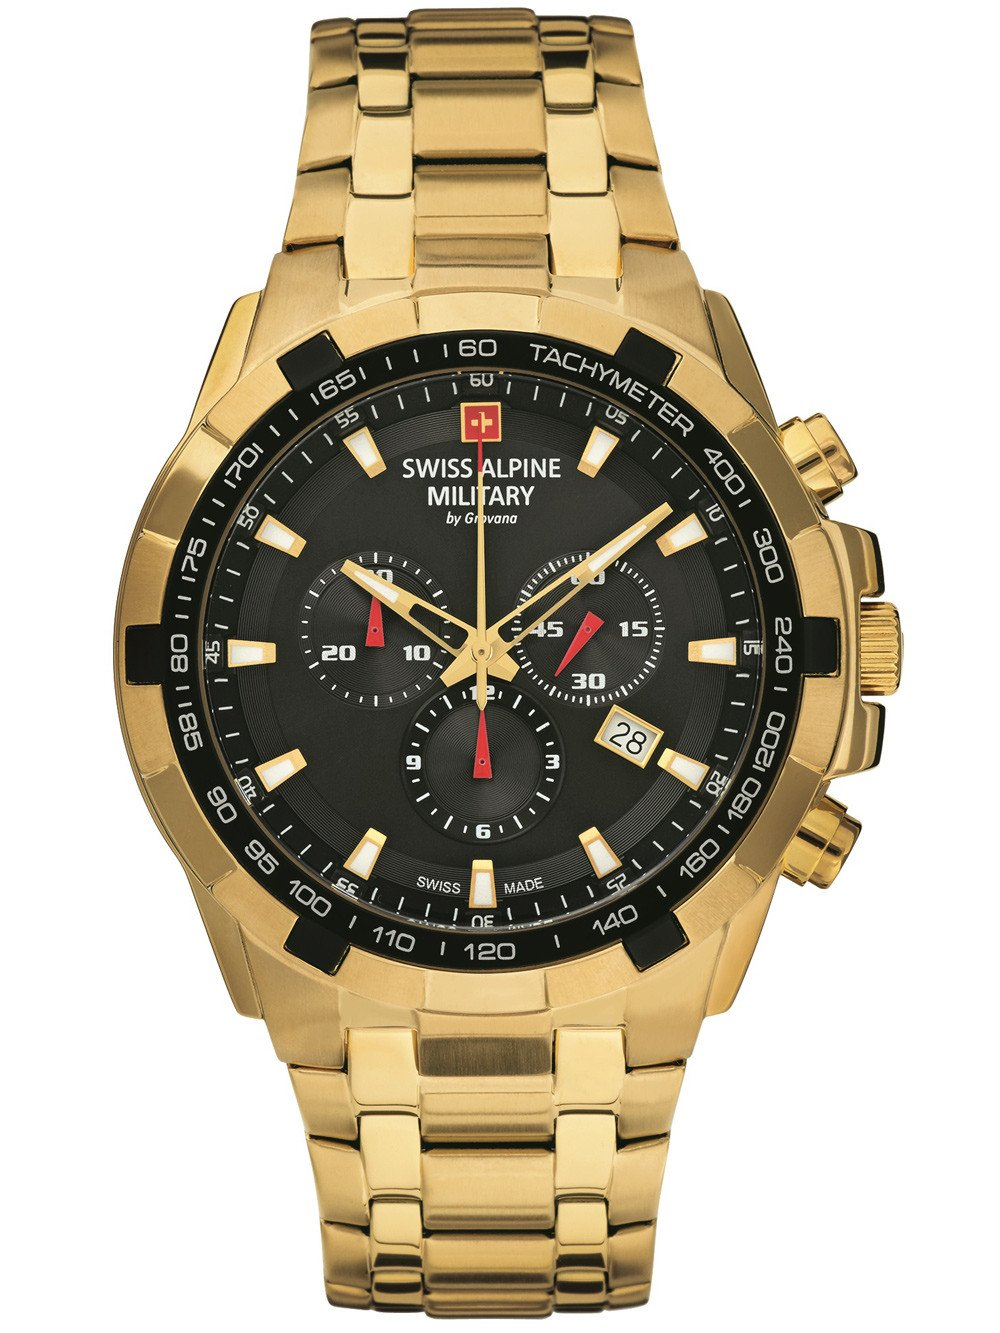 Swiss Alpine Military 7043.9117 Chrono 46mm 10ATM